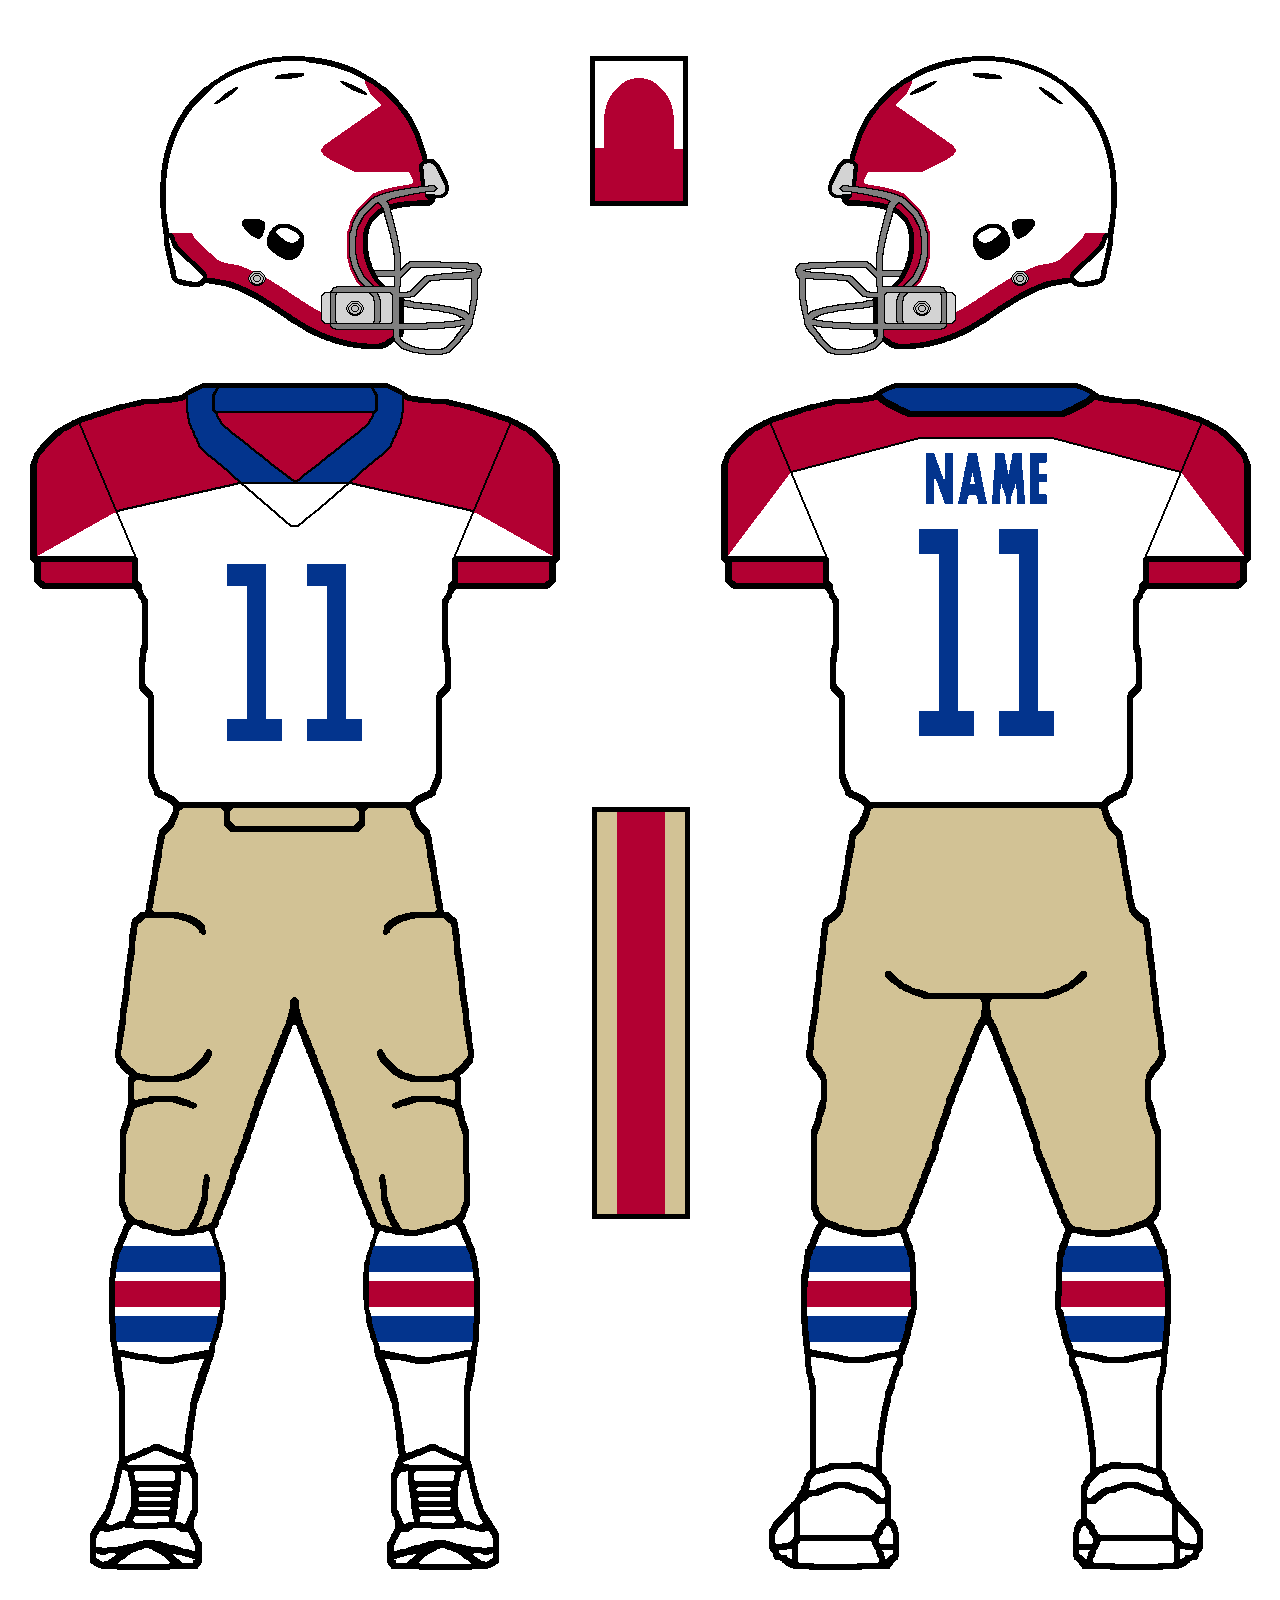 GIANTS_1935_AWAY.png